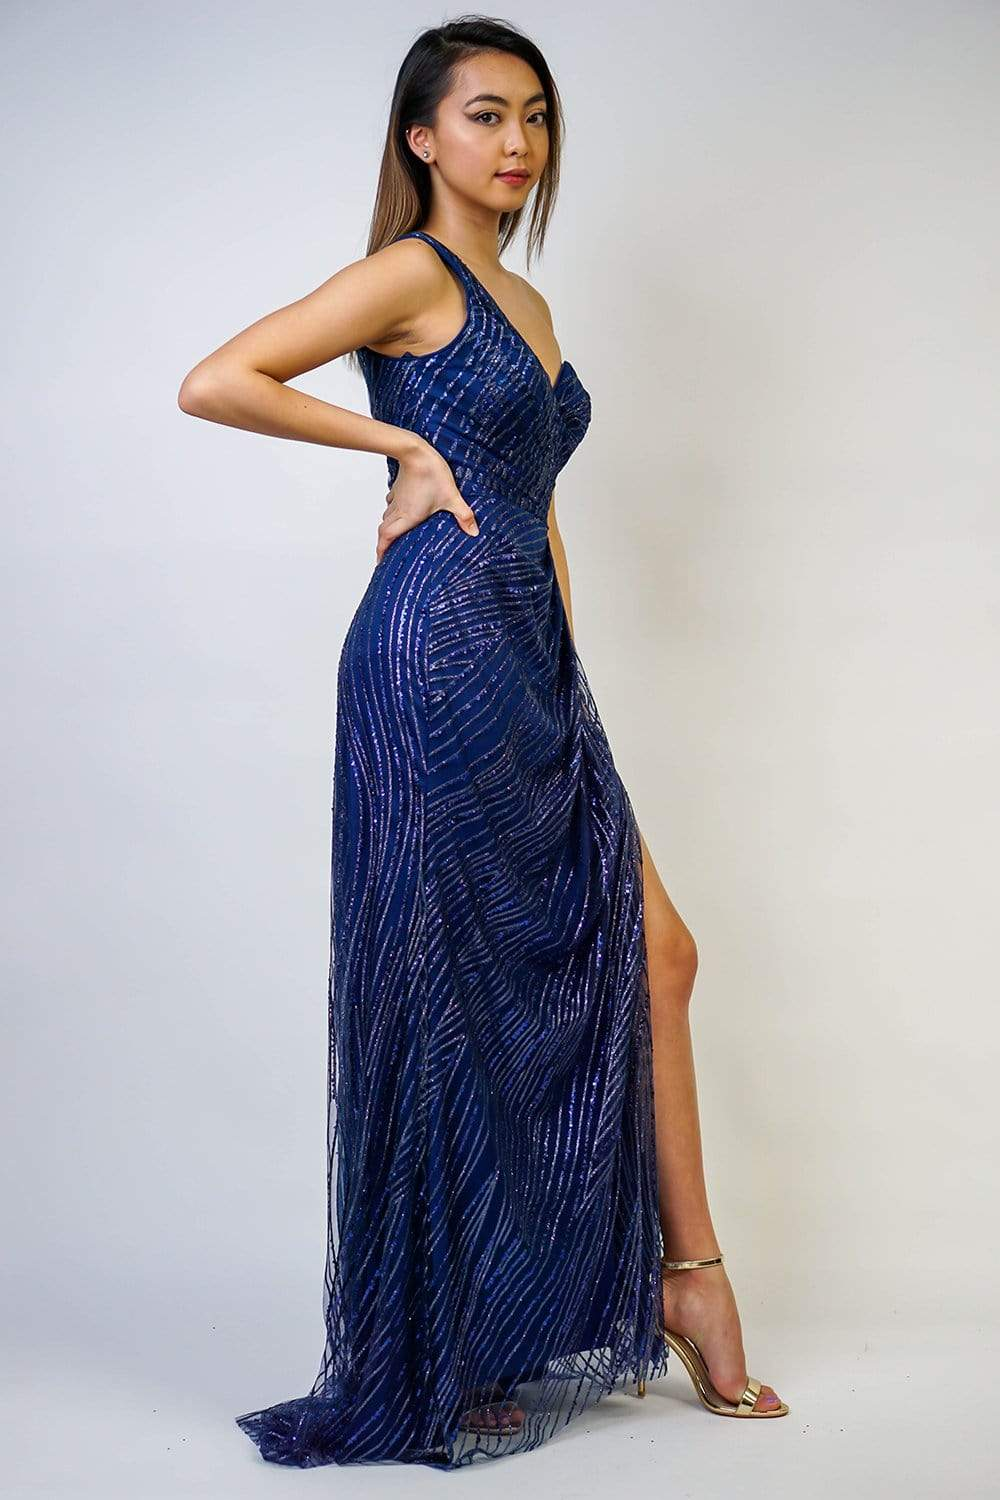 GOWN One Shoulder Wrapped Sequin Gown Navy - Chloe Dao